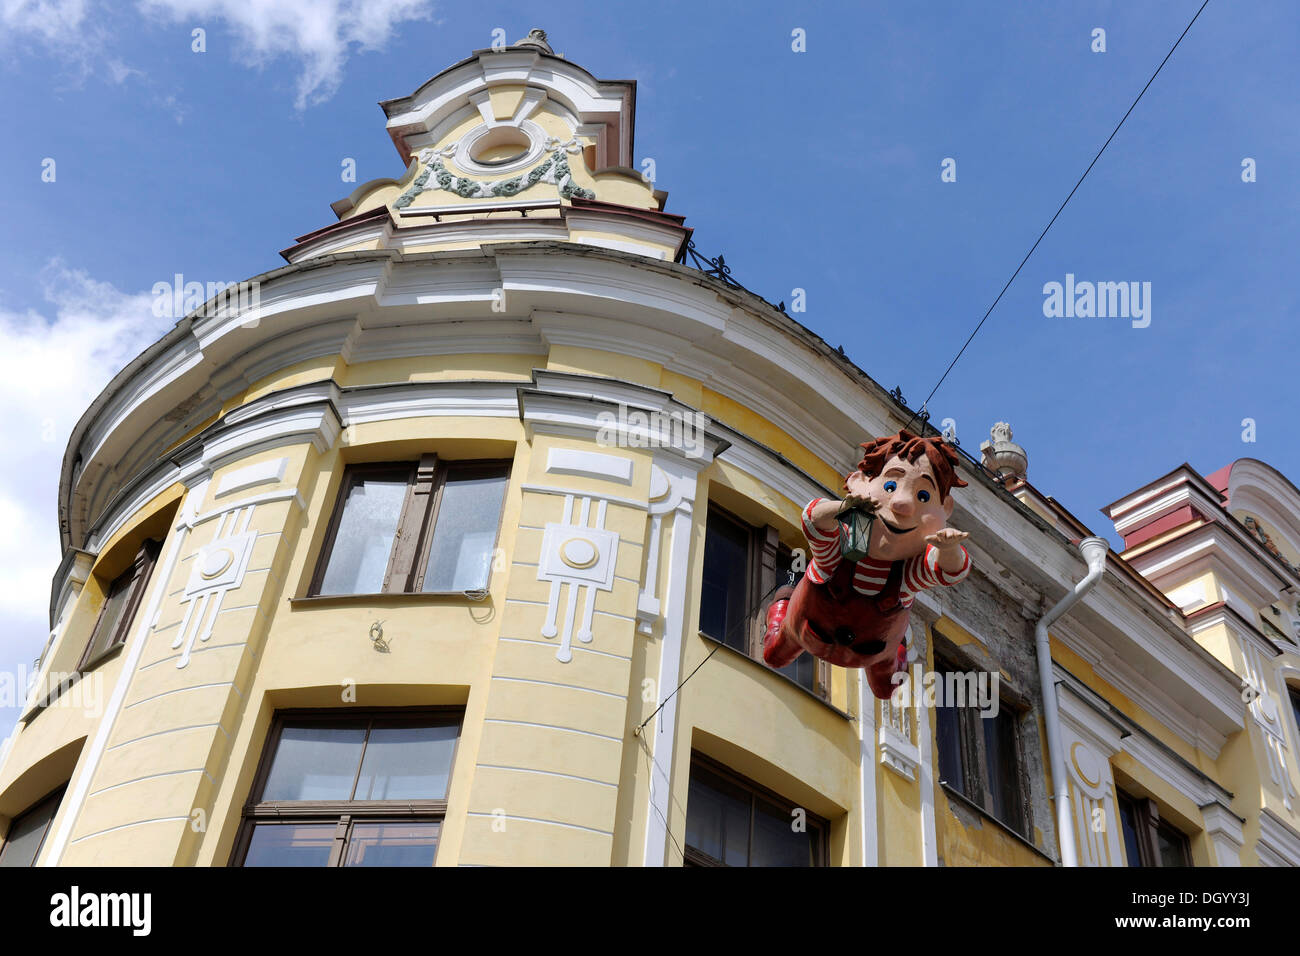 Comical figure with lantern, decoration on a building facade, Tallinn, Estonia, Northern Europe, Europe - Stock Image